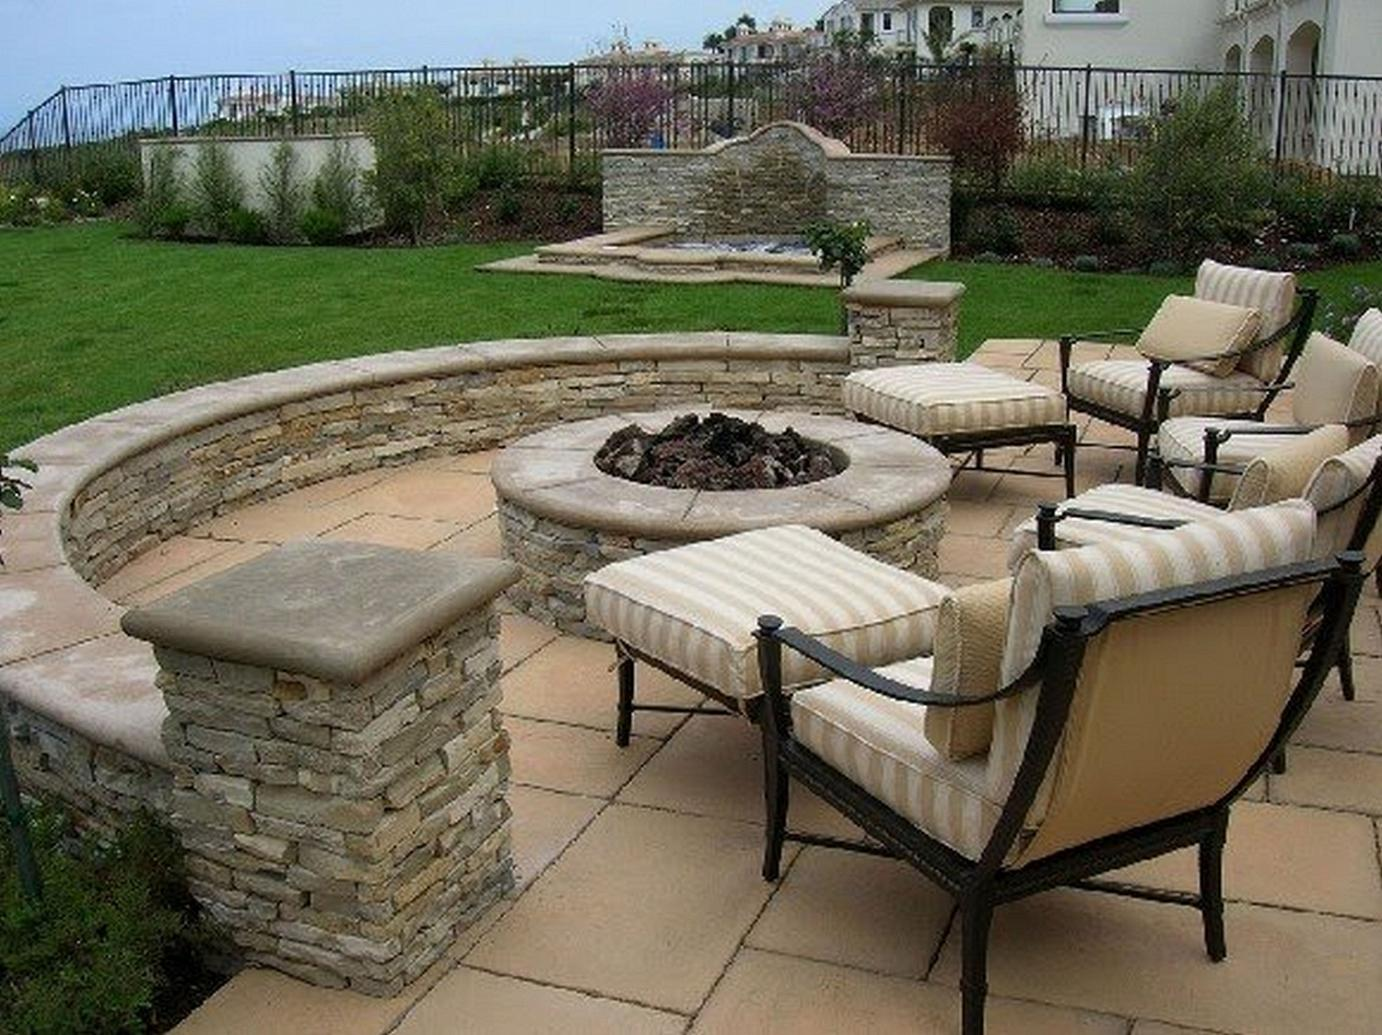 Backyard ideas budget large and beautiful photos photo for Patio ideas with fire pit on a budget